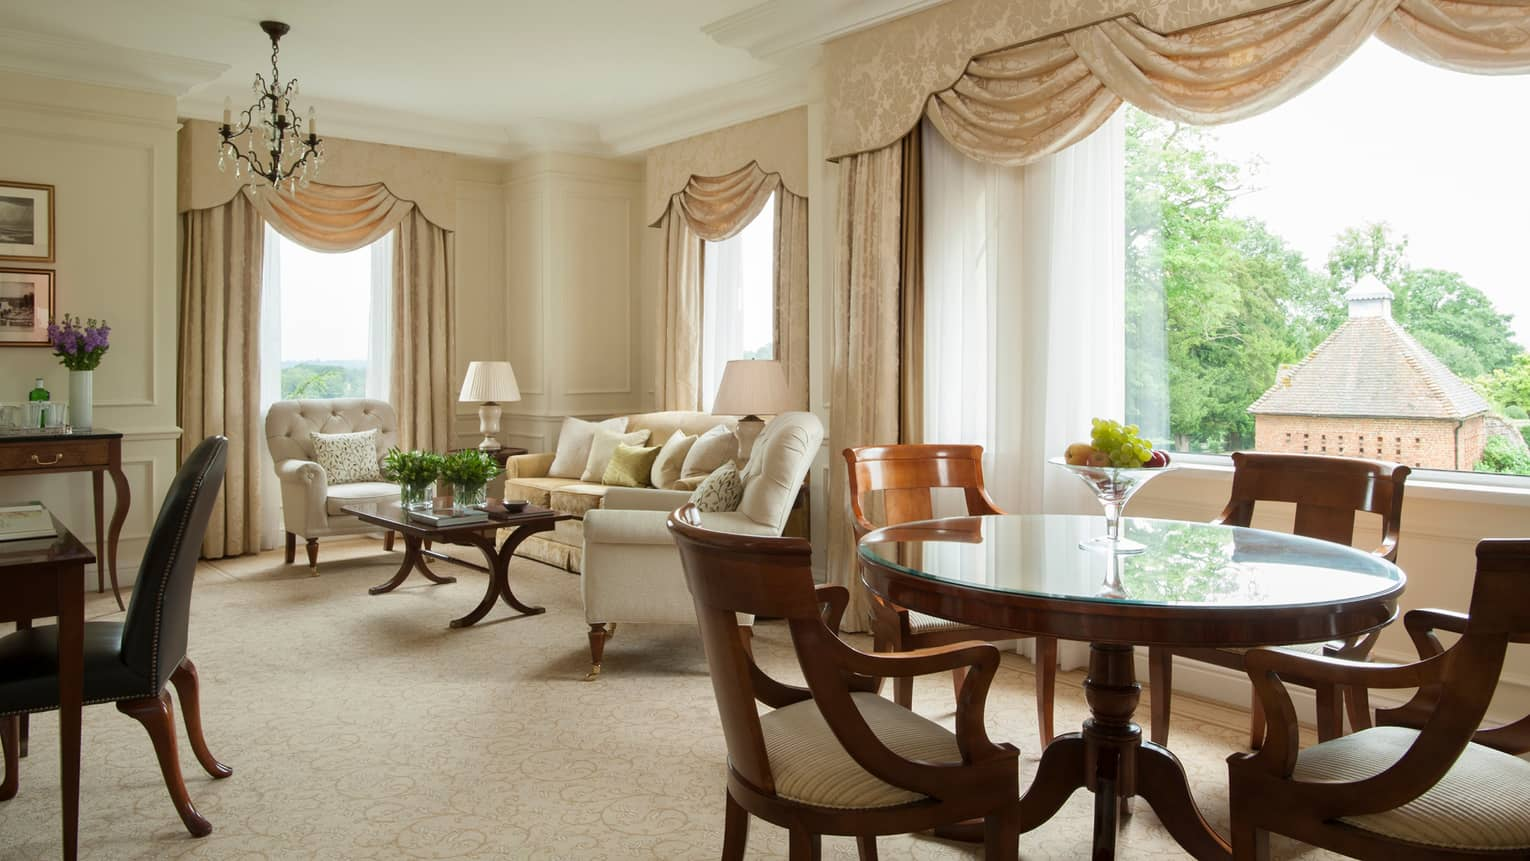 Park Suite tall sunny windows with silk curtains, seating area, dining table